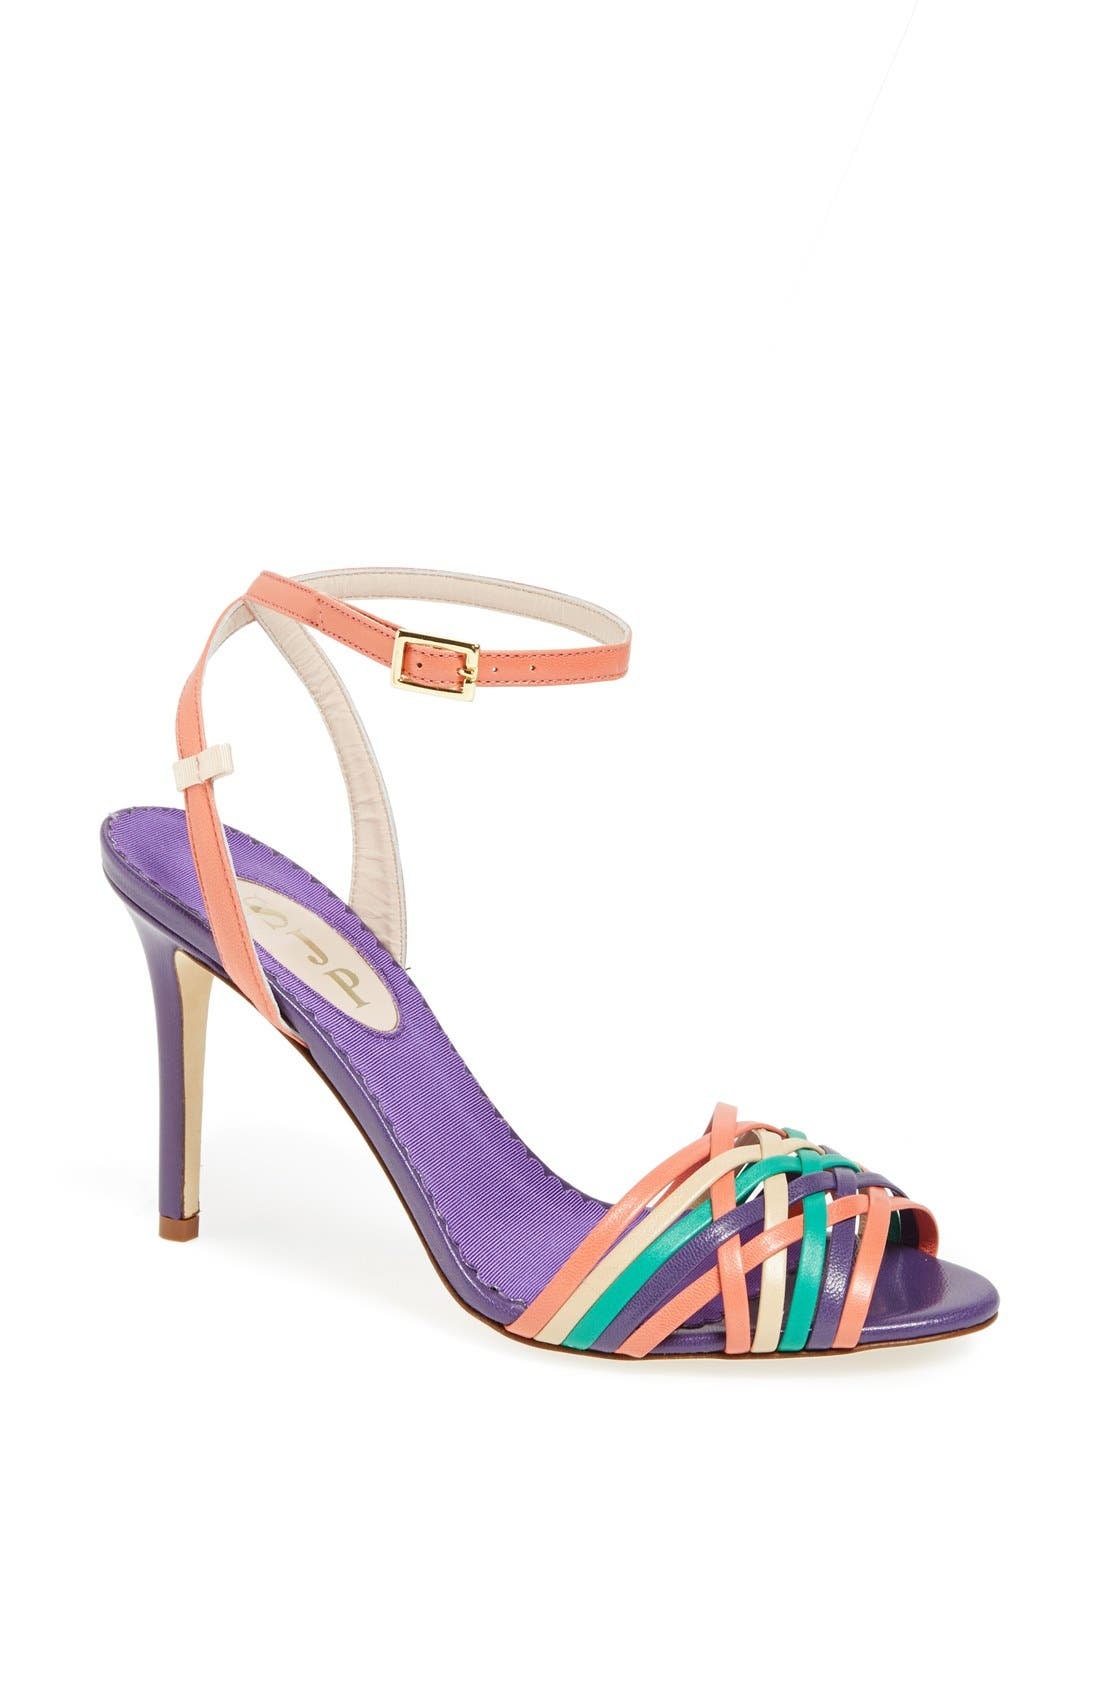 Main Image - SJP 'Maud' Sandal (Nordstrom Exclusive)